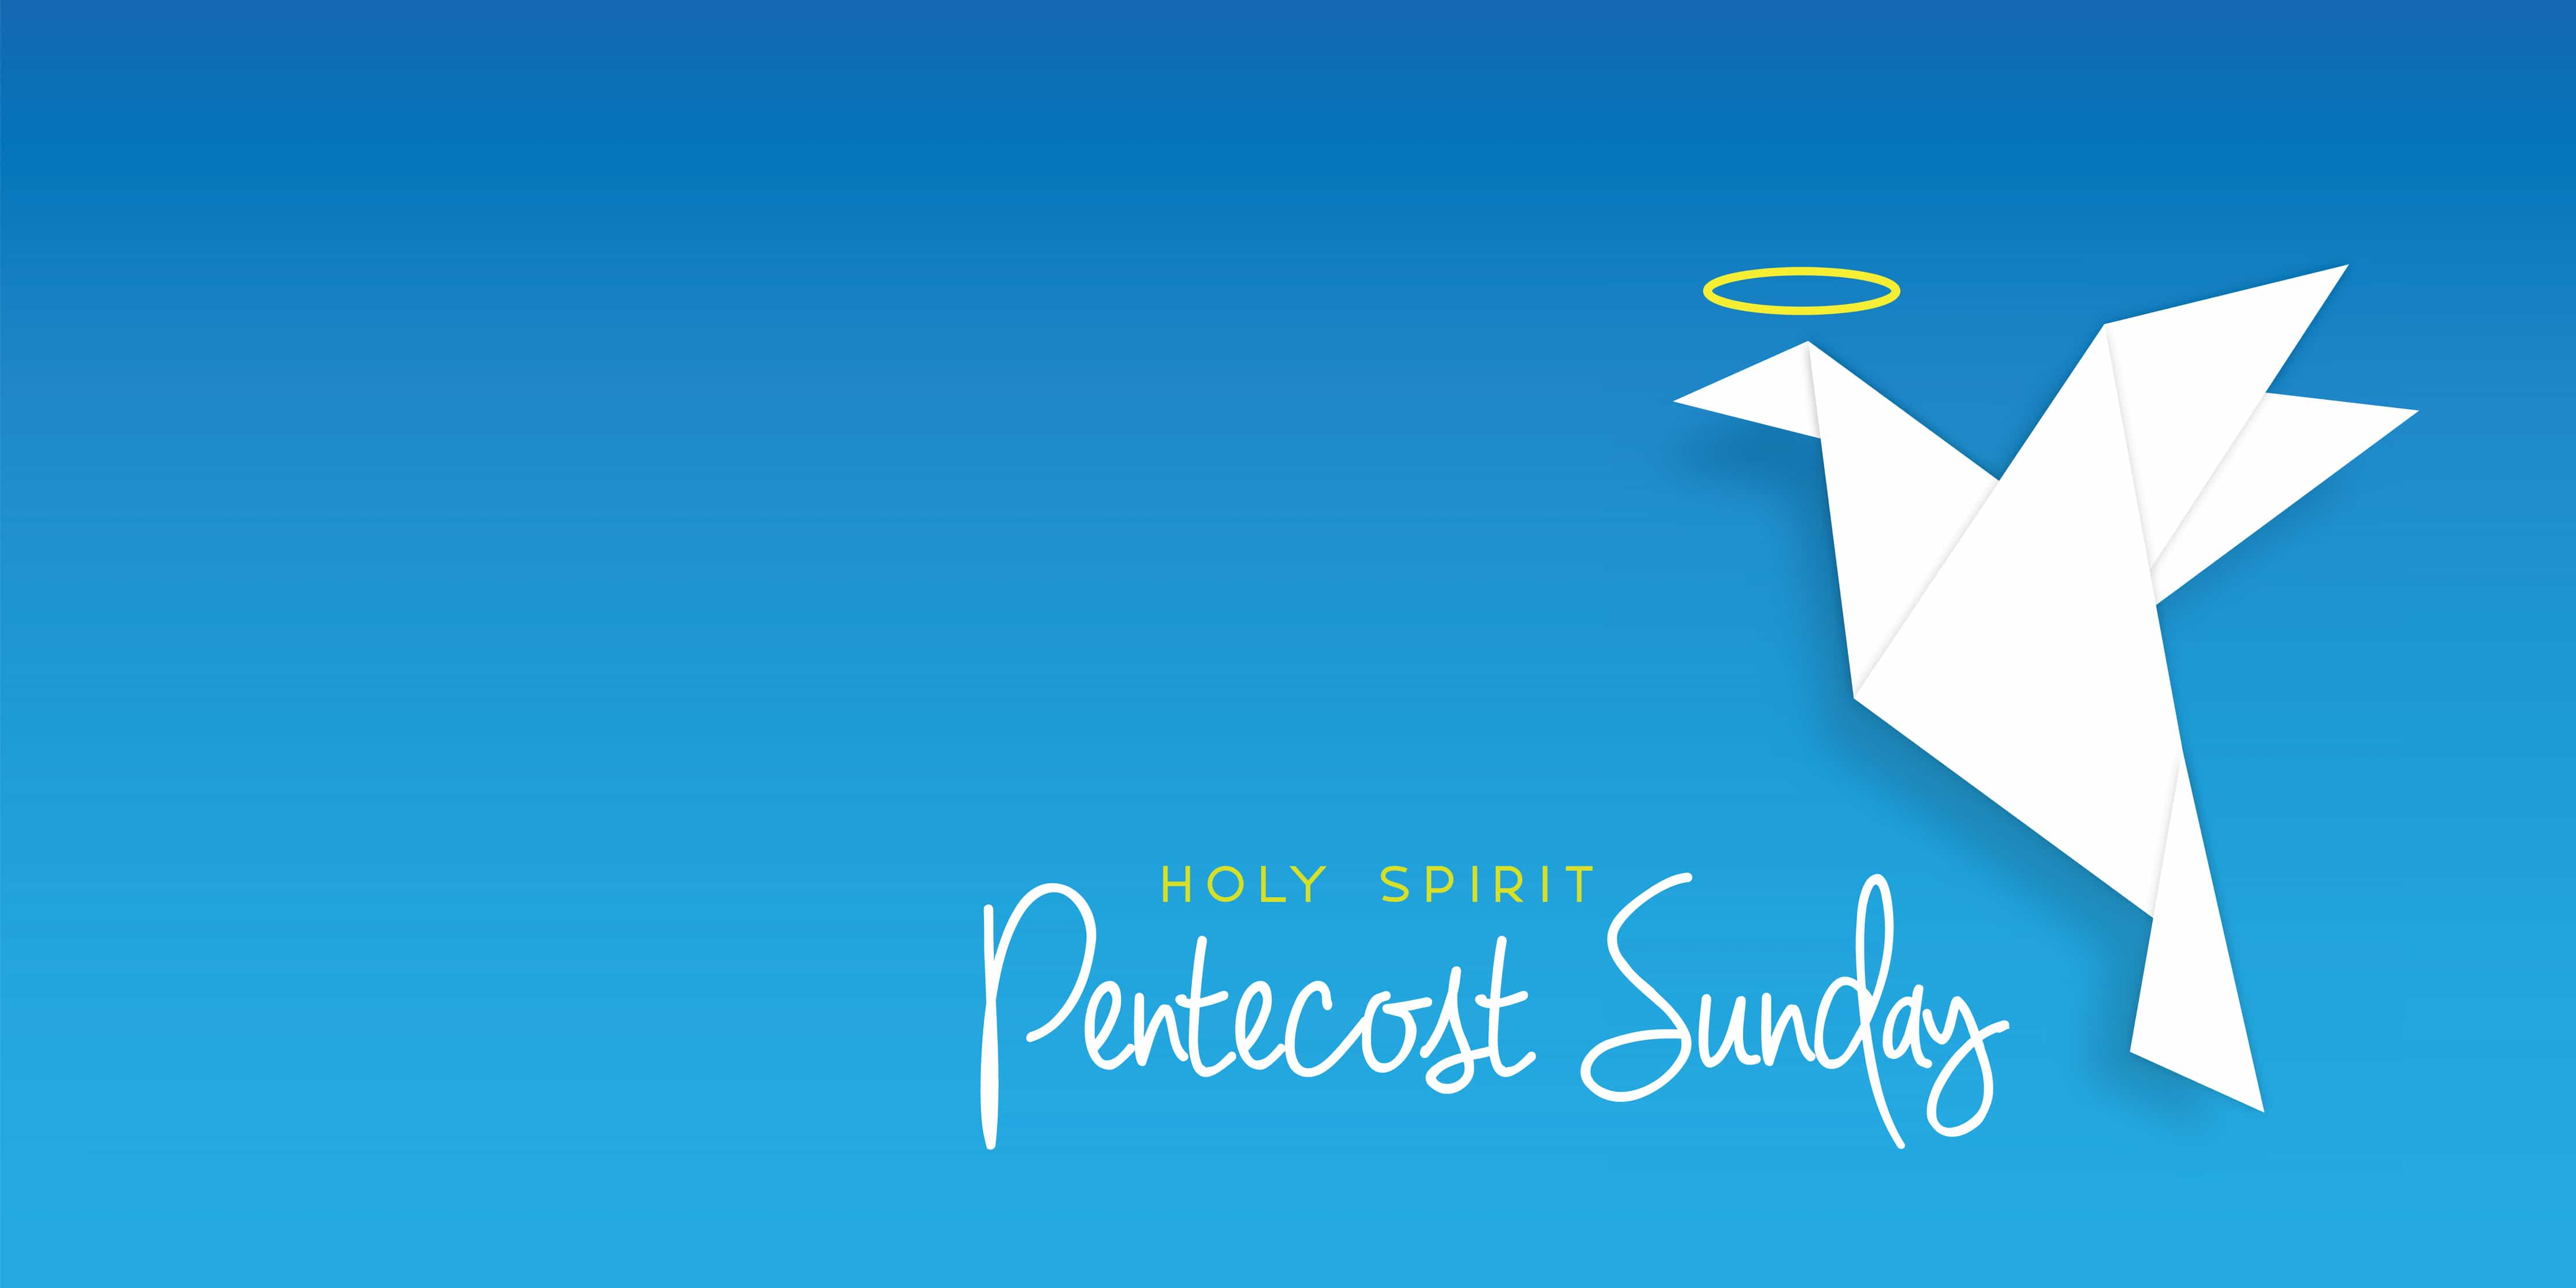 8 Things to Know About Pentecost Sunday